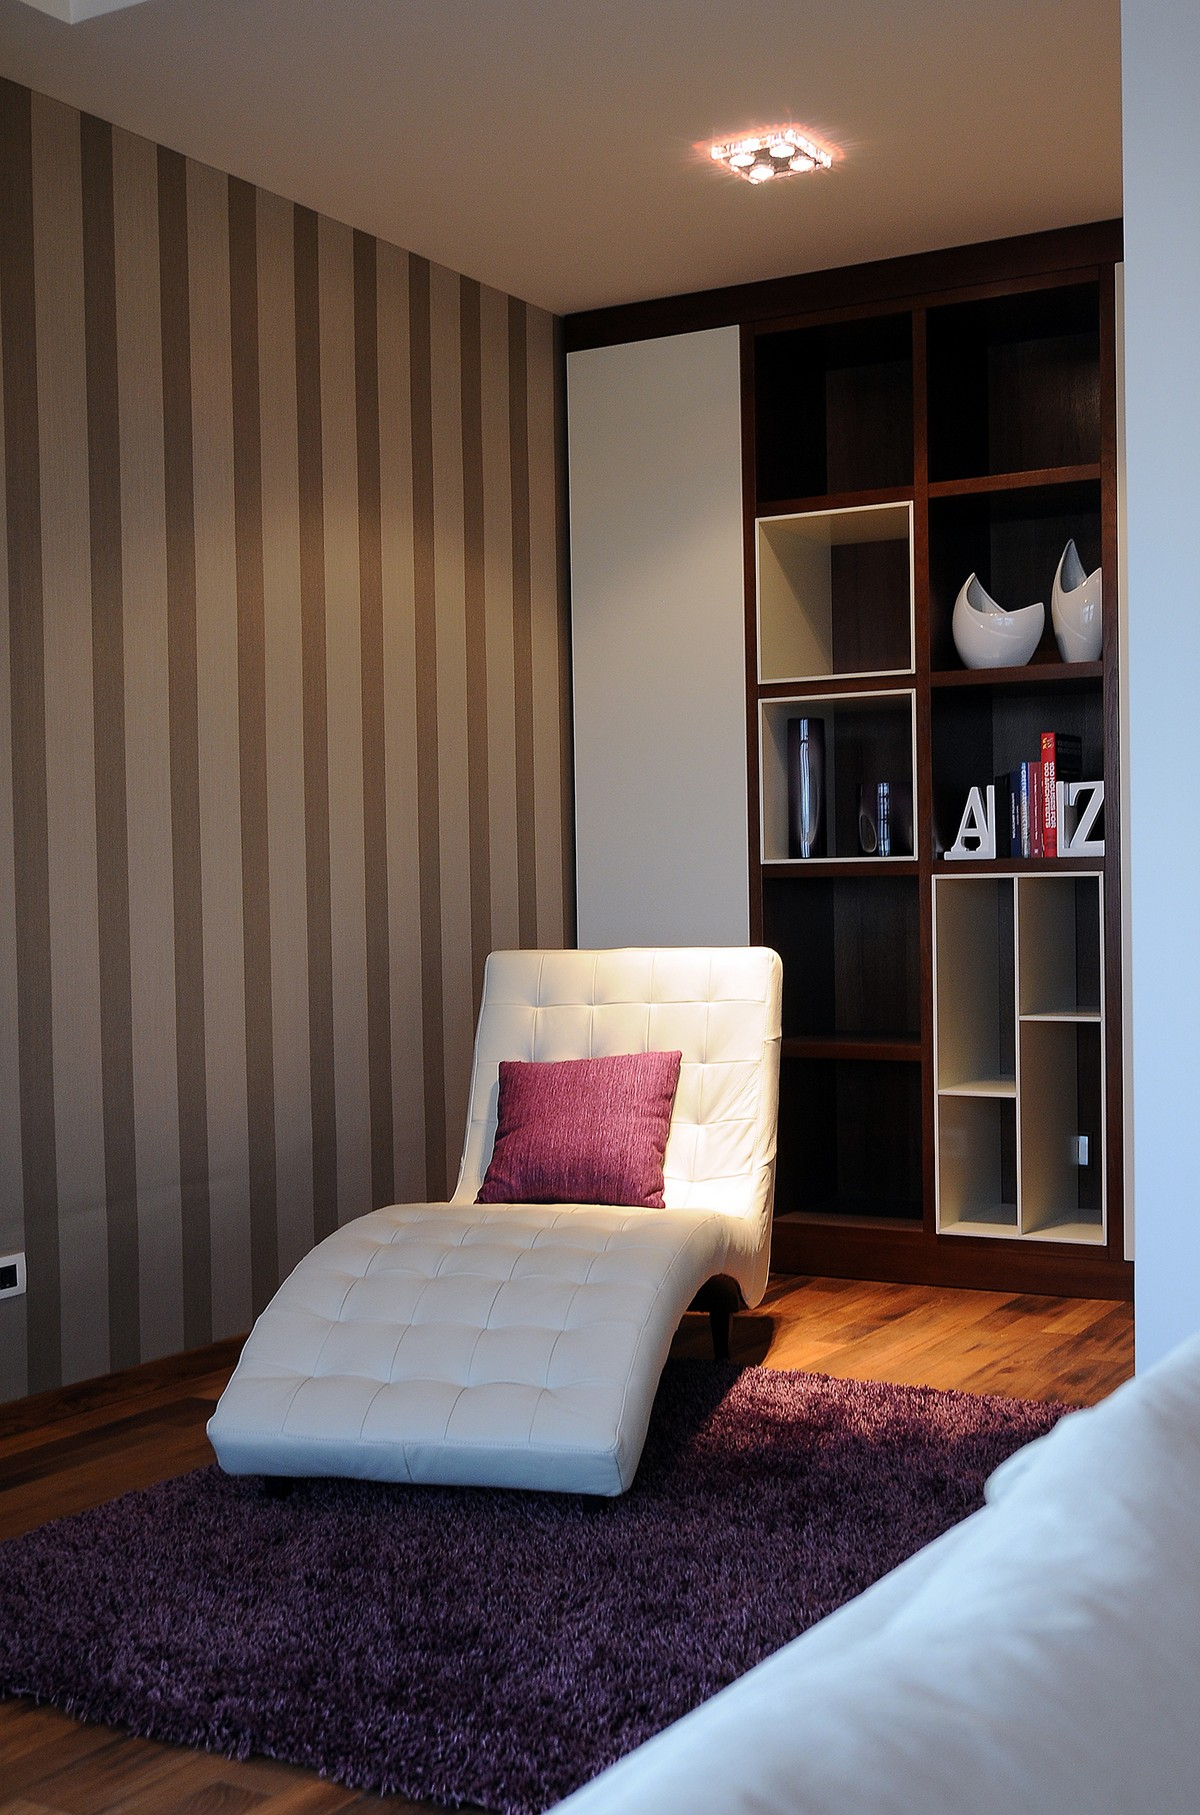 Luxurious Penthouse in Modern and Comfort Design: Cozy White Lounge Chair With Purple Rugs And Lined Wallpaper